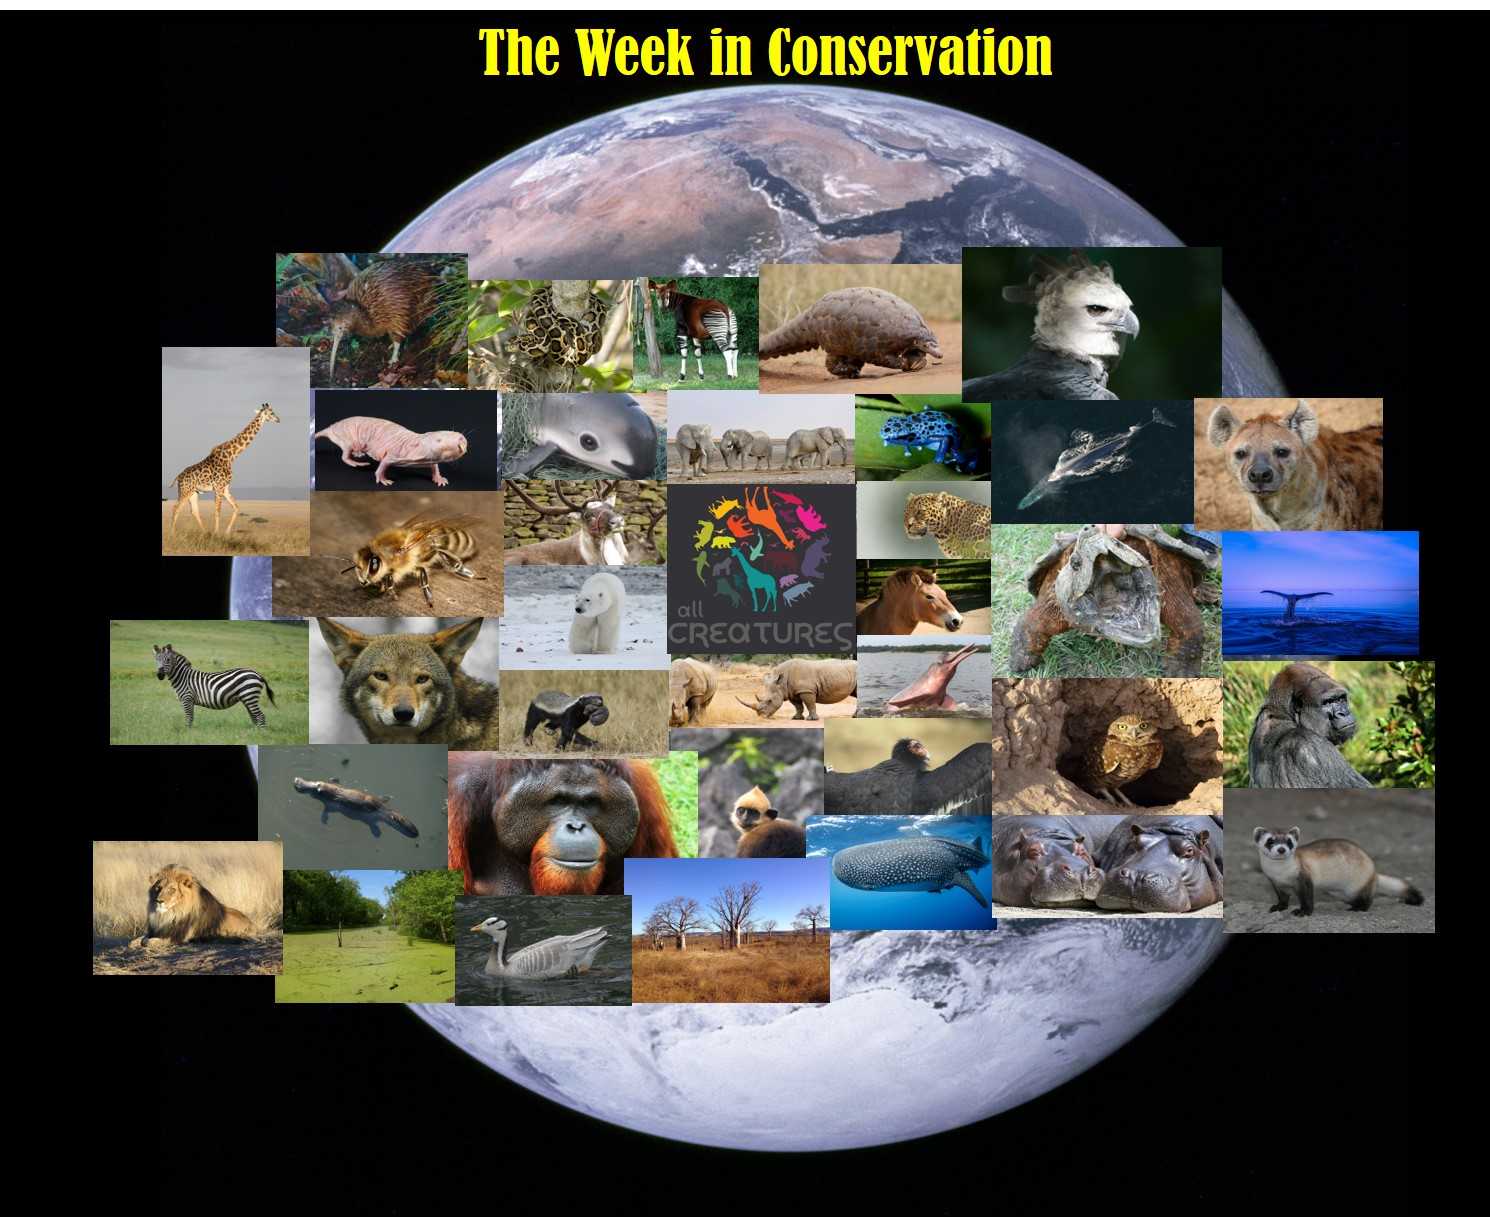 The Week in Conservation for August 10, 2018